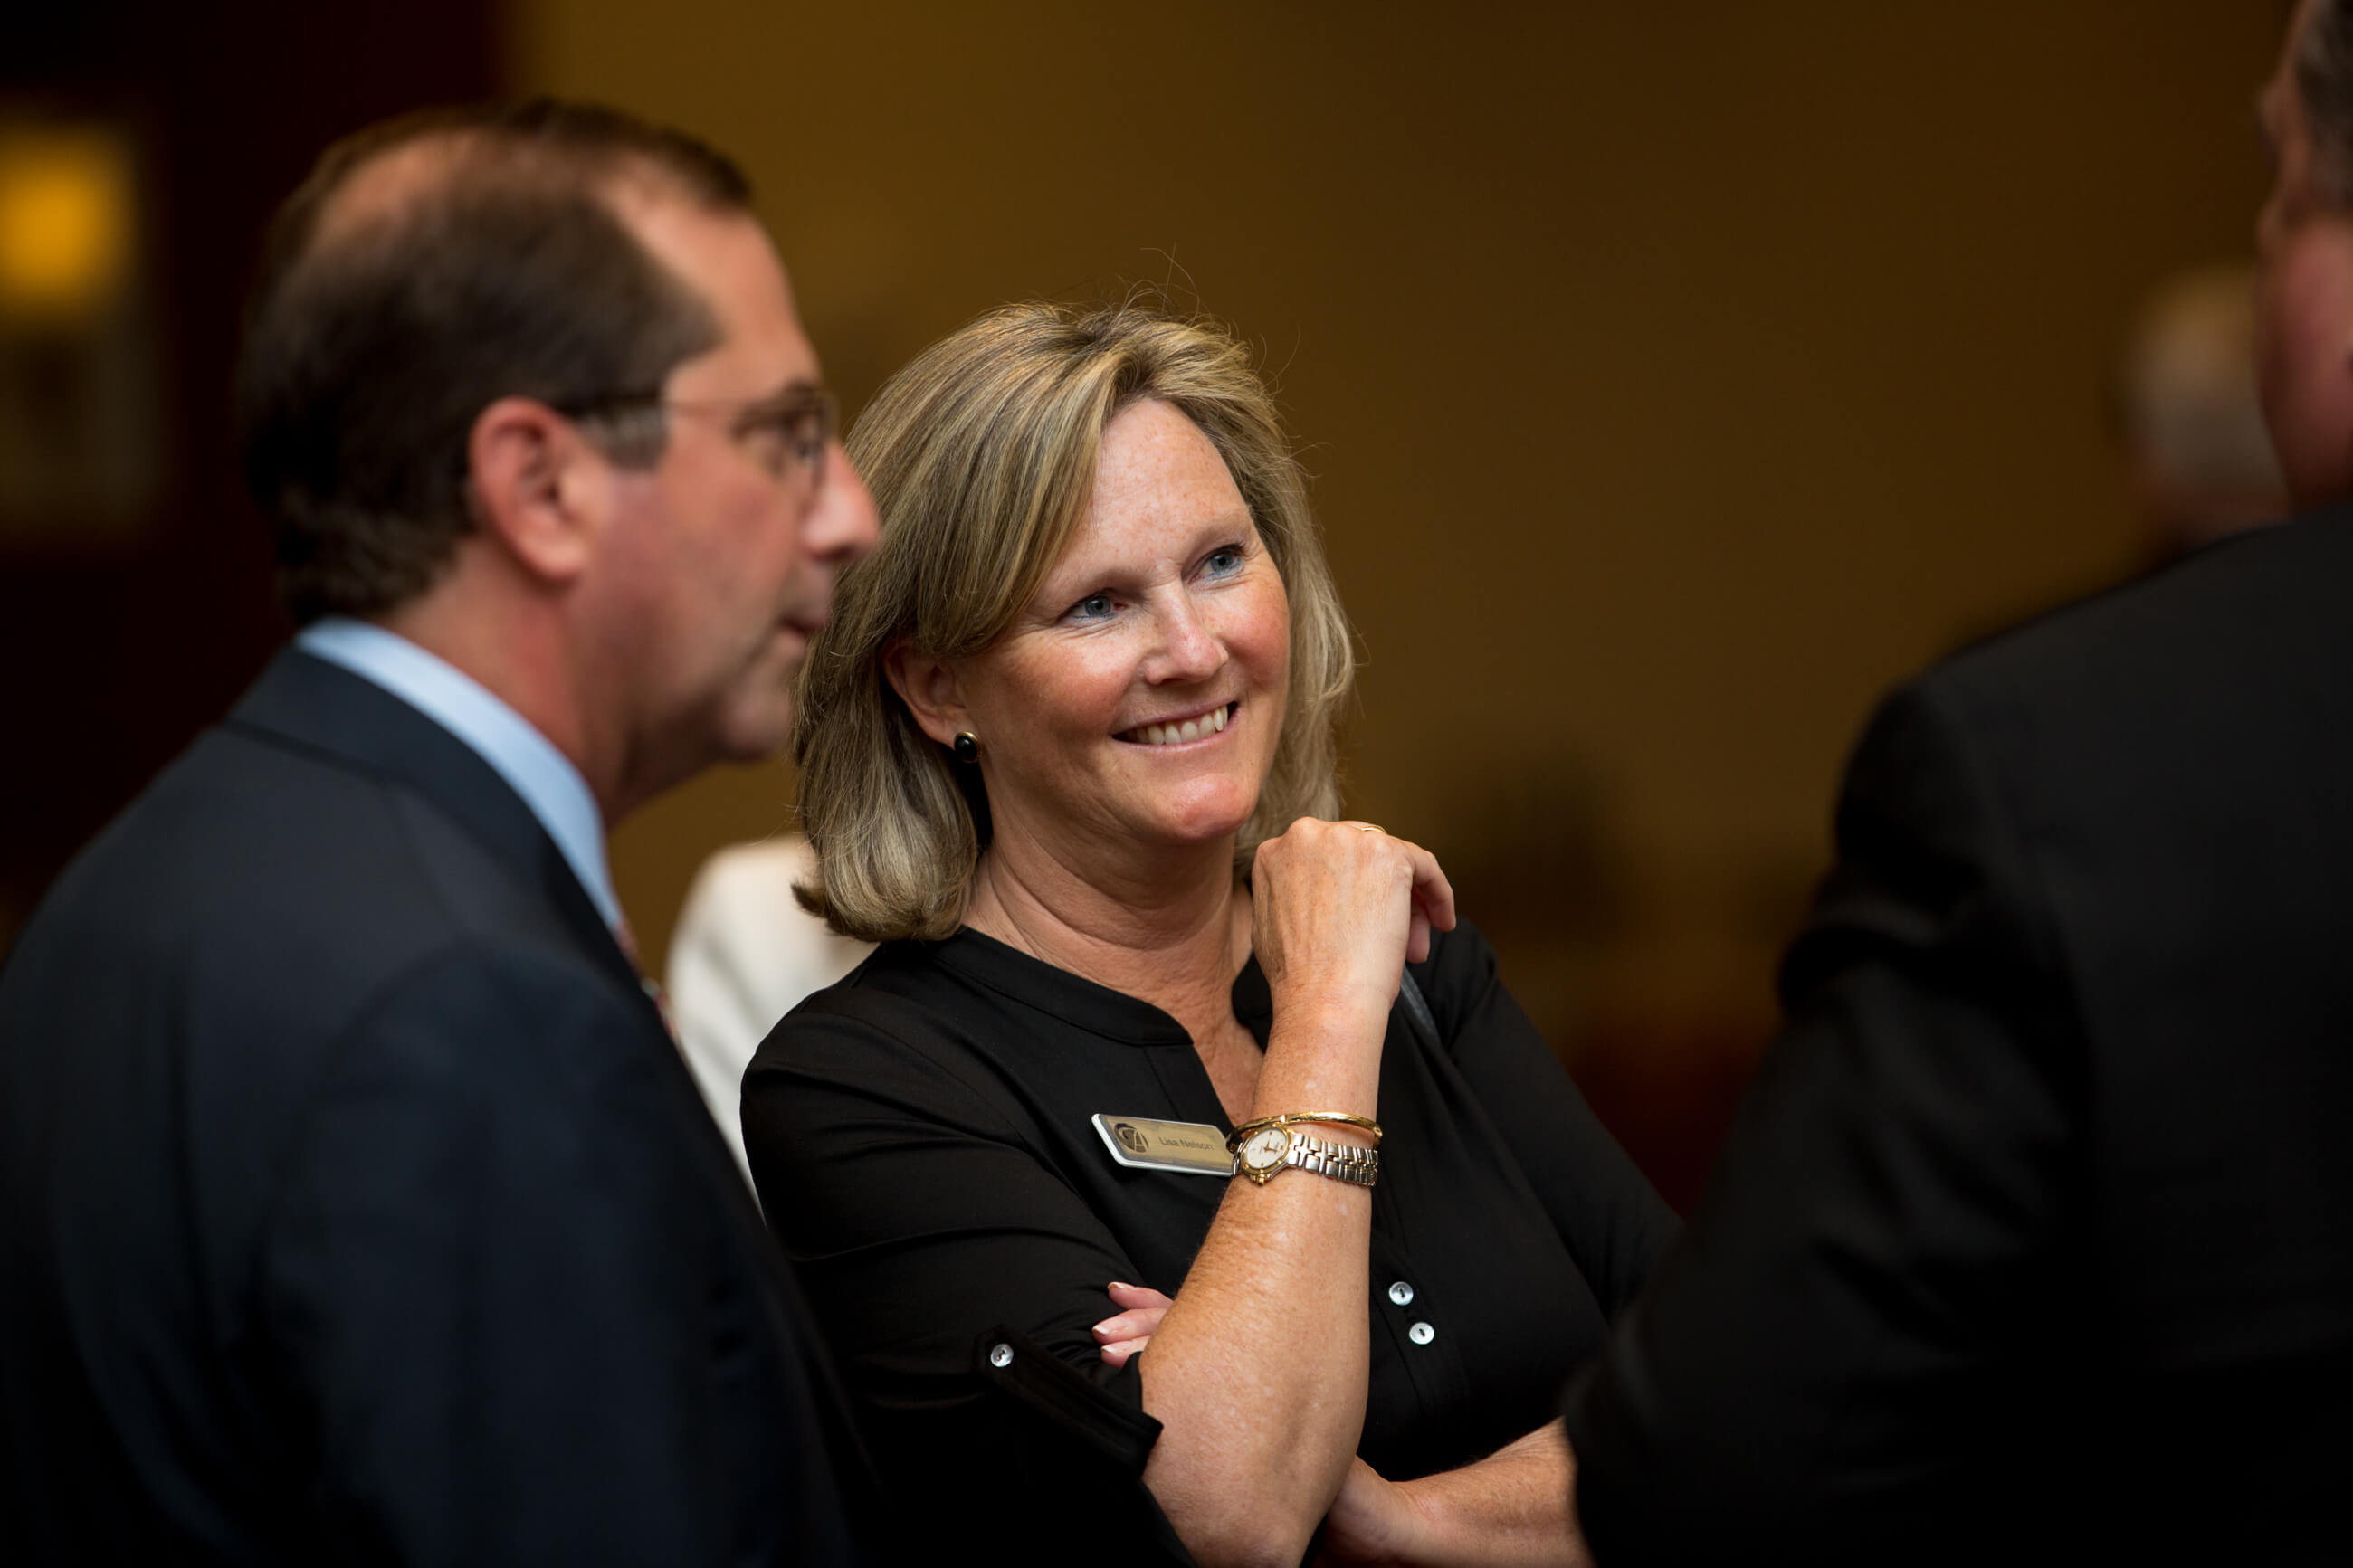 Lisa Nelson, CEO of ALEC, said she served as the catalyst for changes the organization made to become more transparent. (Photo: ALEC)